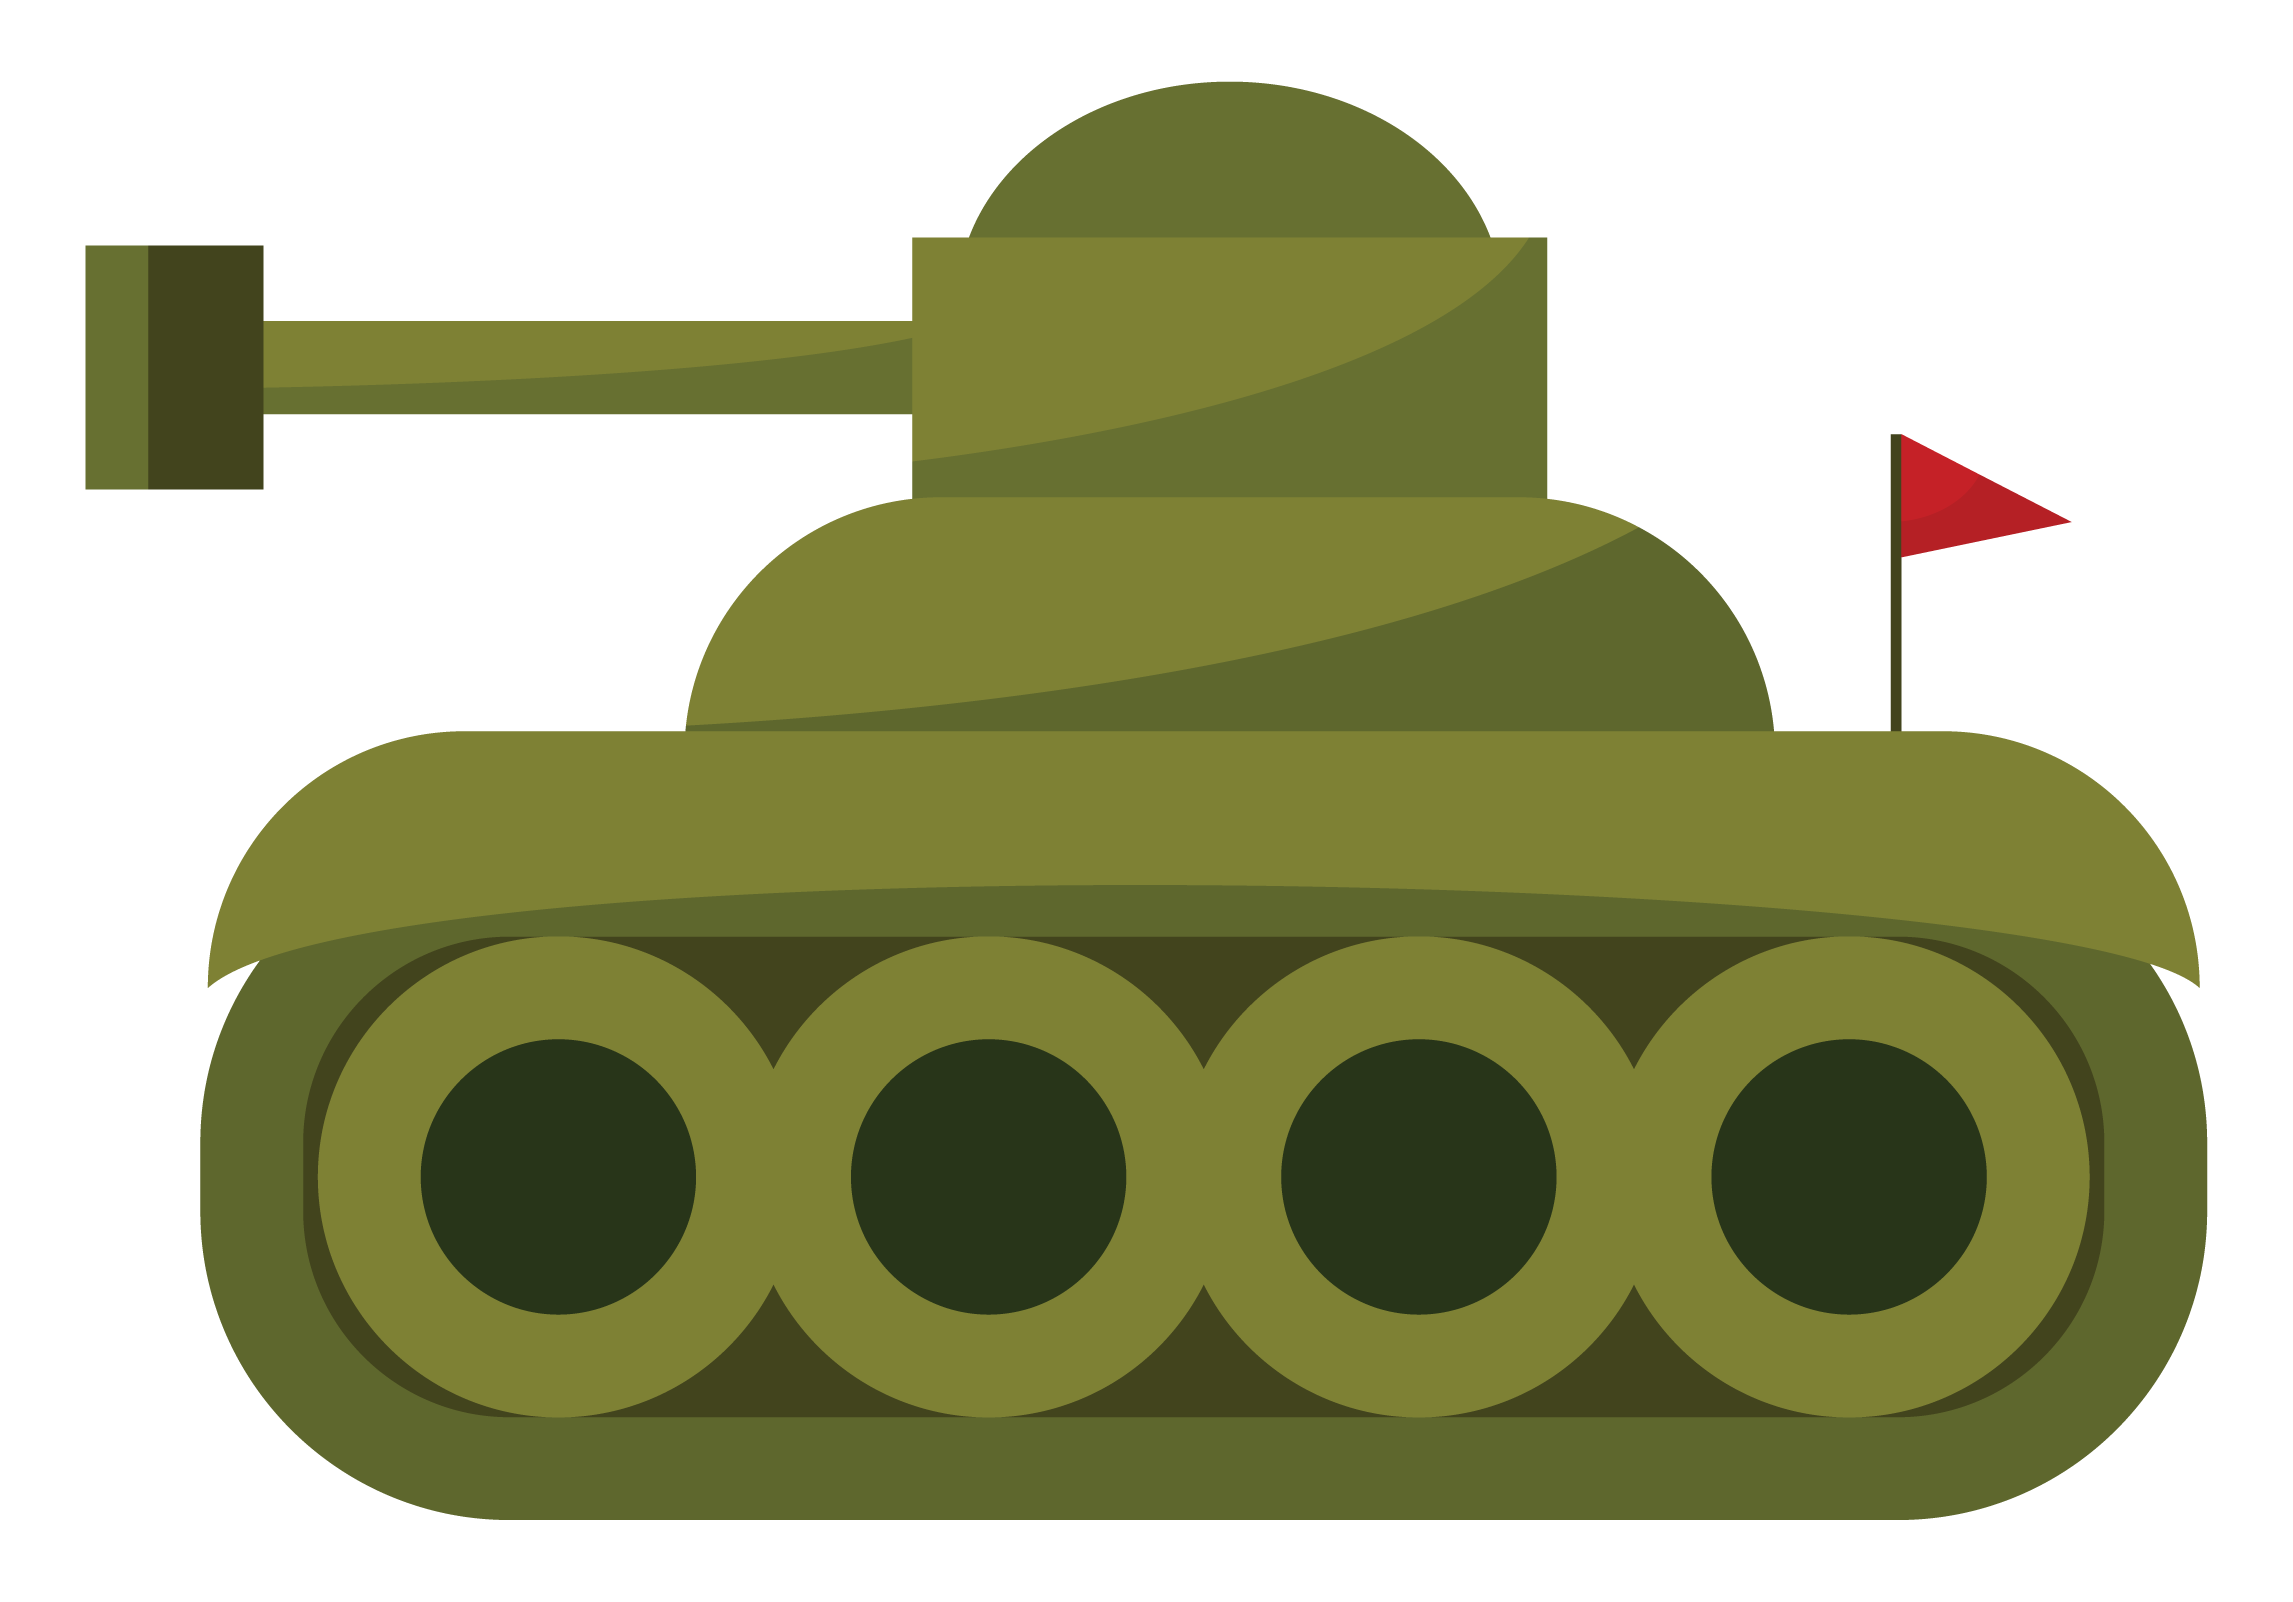 Army tank clipart free clipart royalty free stock Army Tank Clipart | Free download best Army Tank Clipart on ... clipart royalty free stock